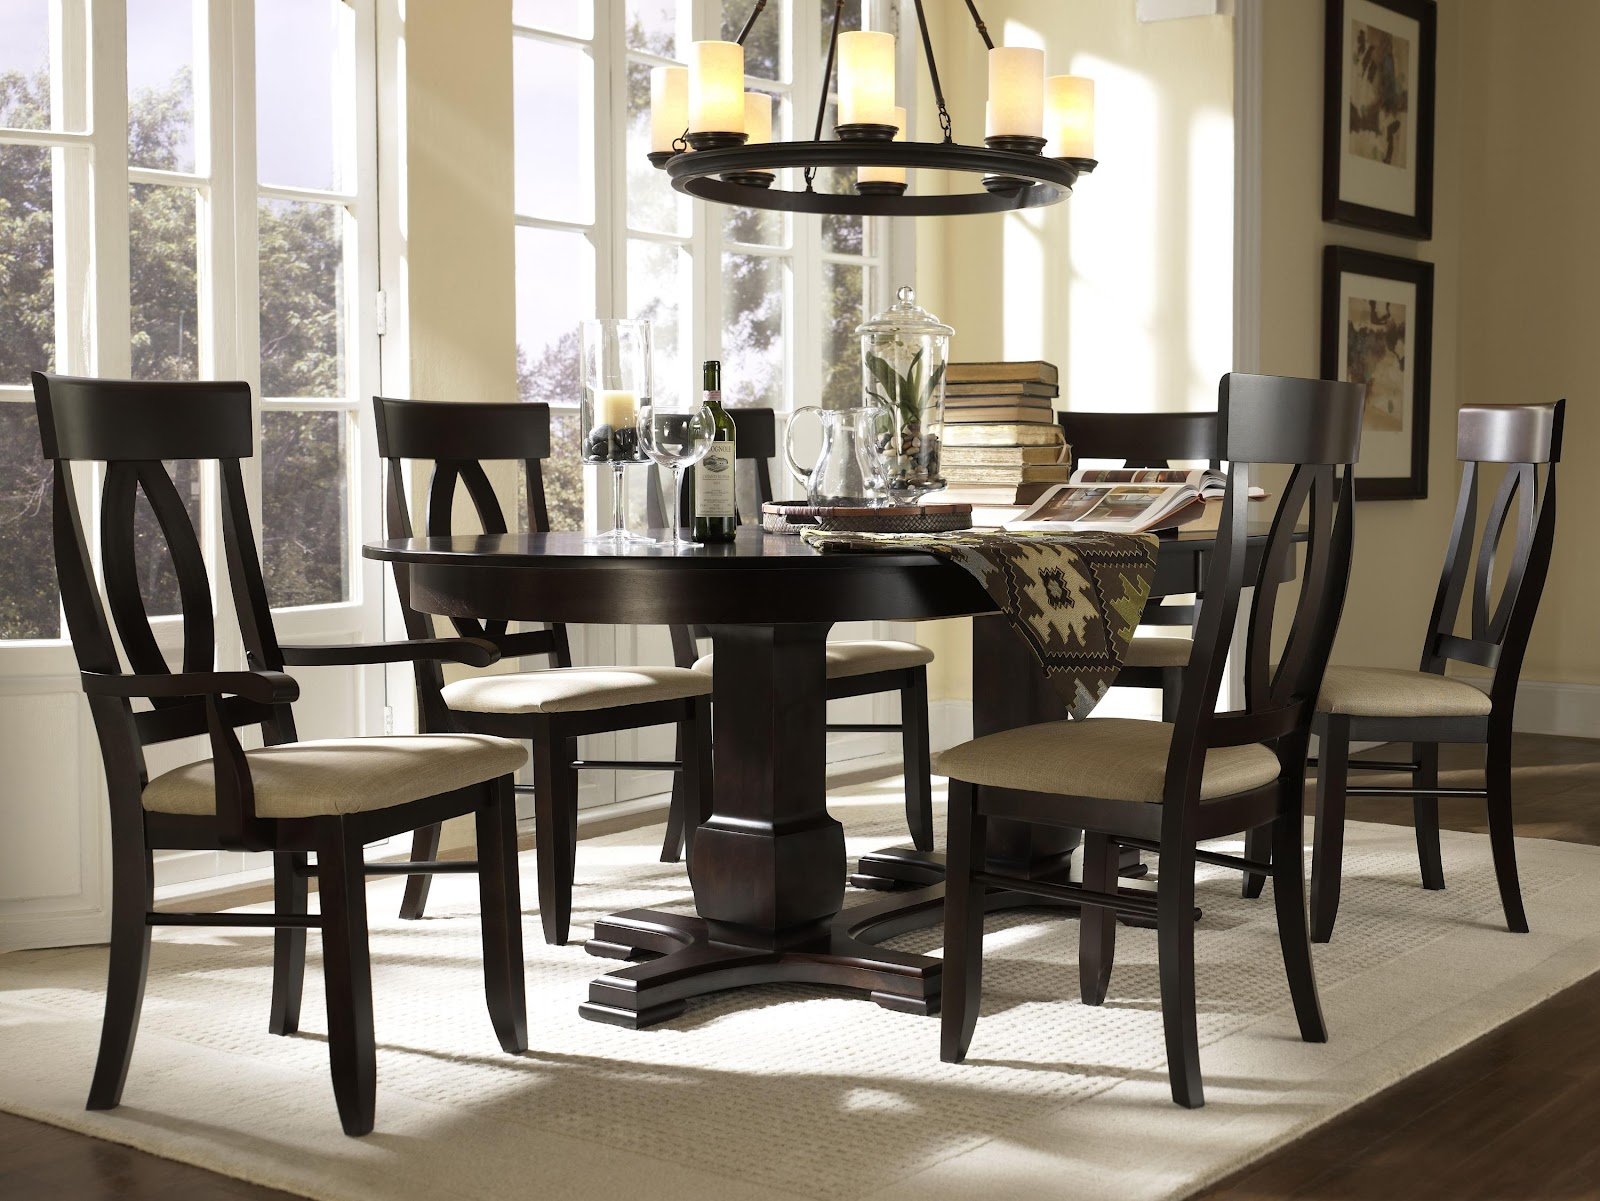 Canadel furniture long island new york ny dining room unique dinette canadel ny bermex ny 631 - Dining room sets ...